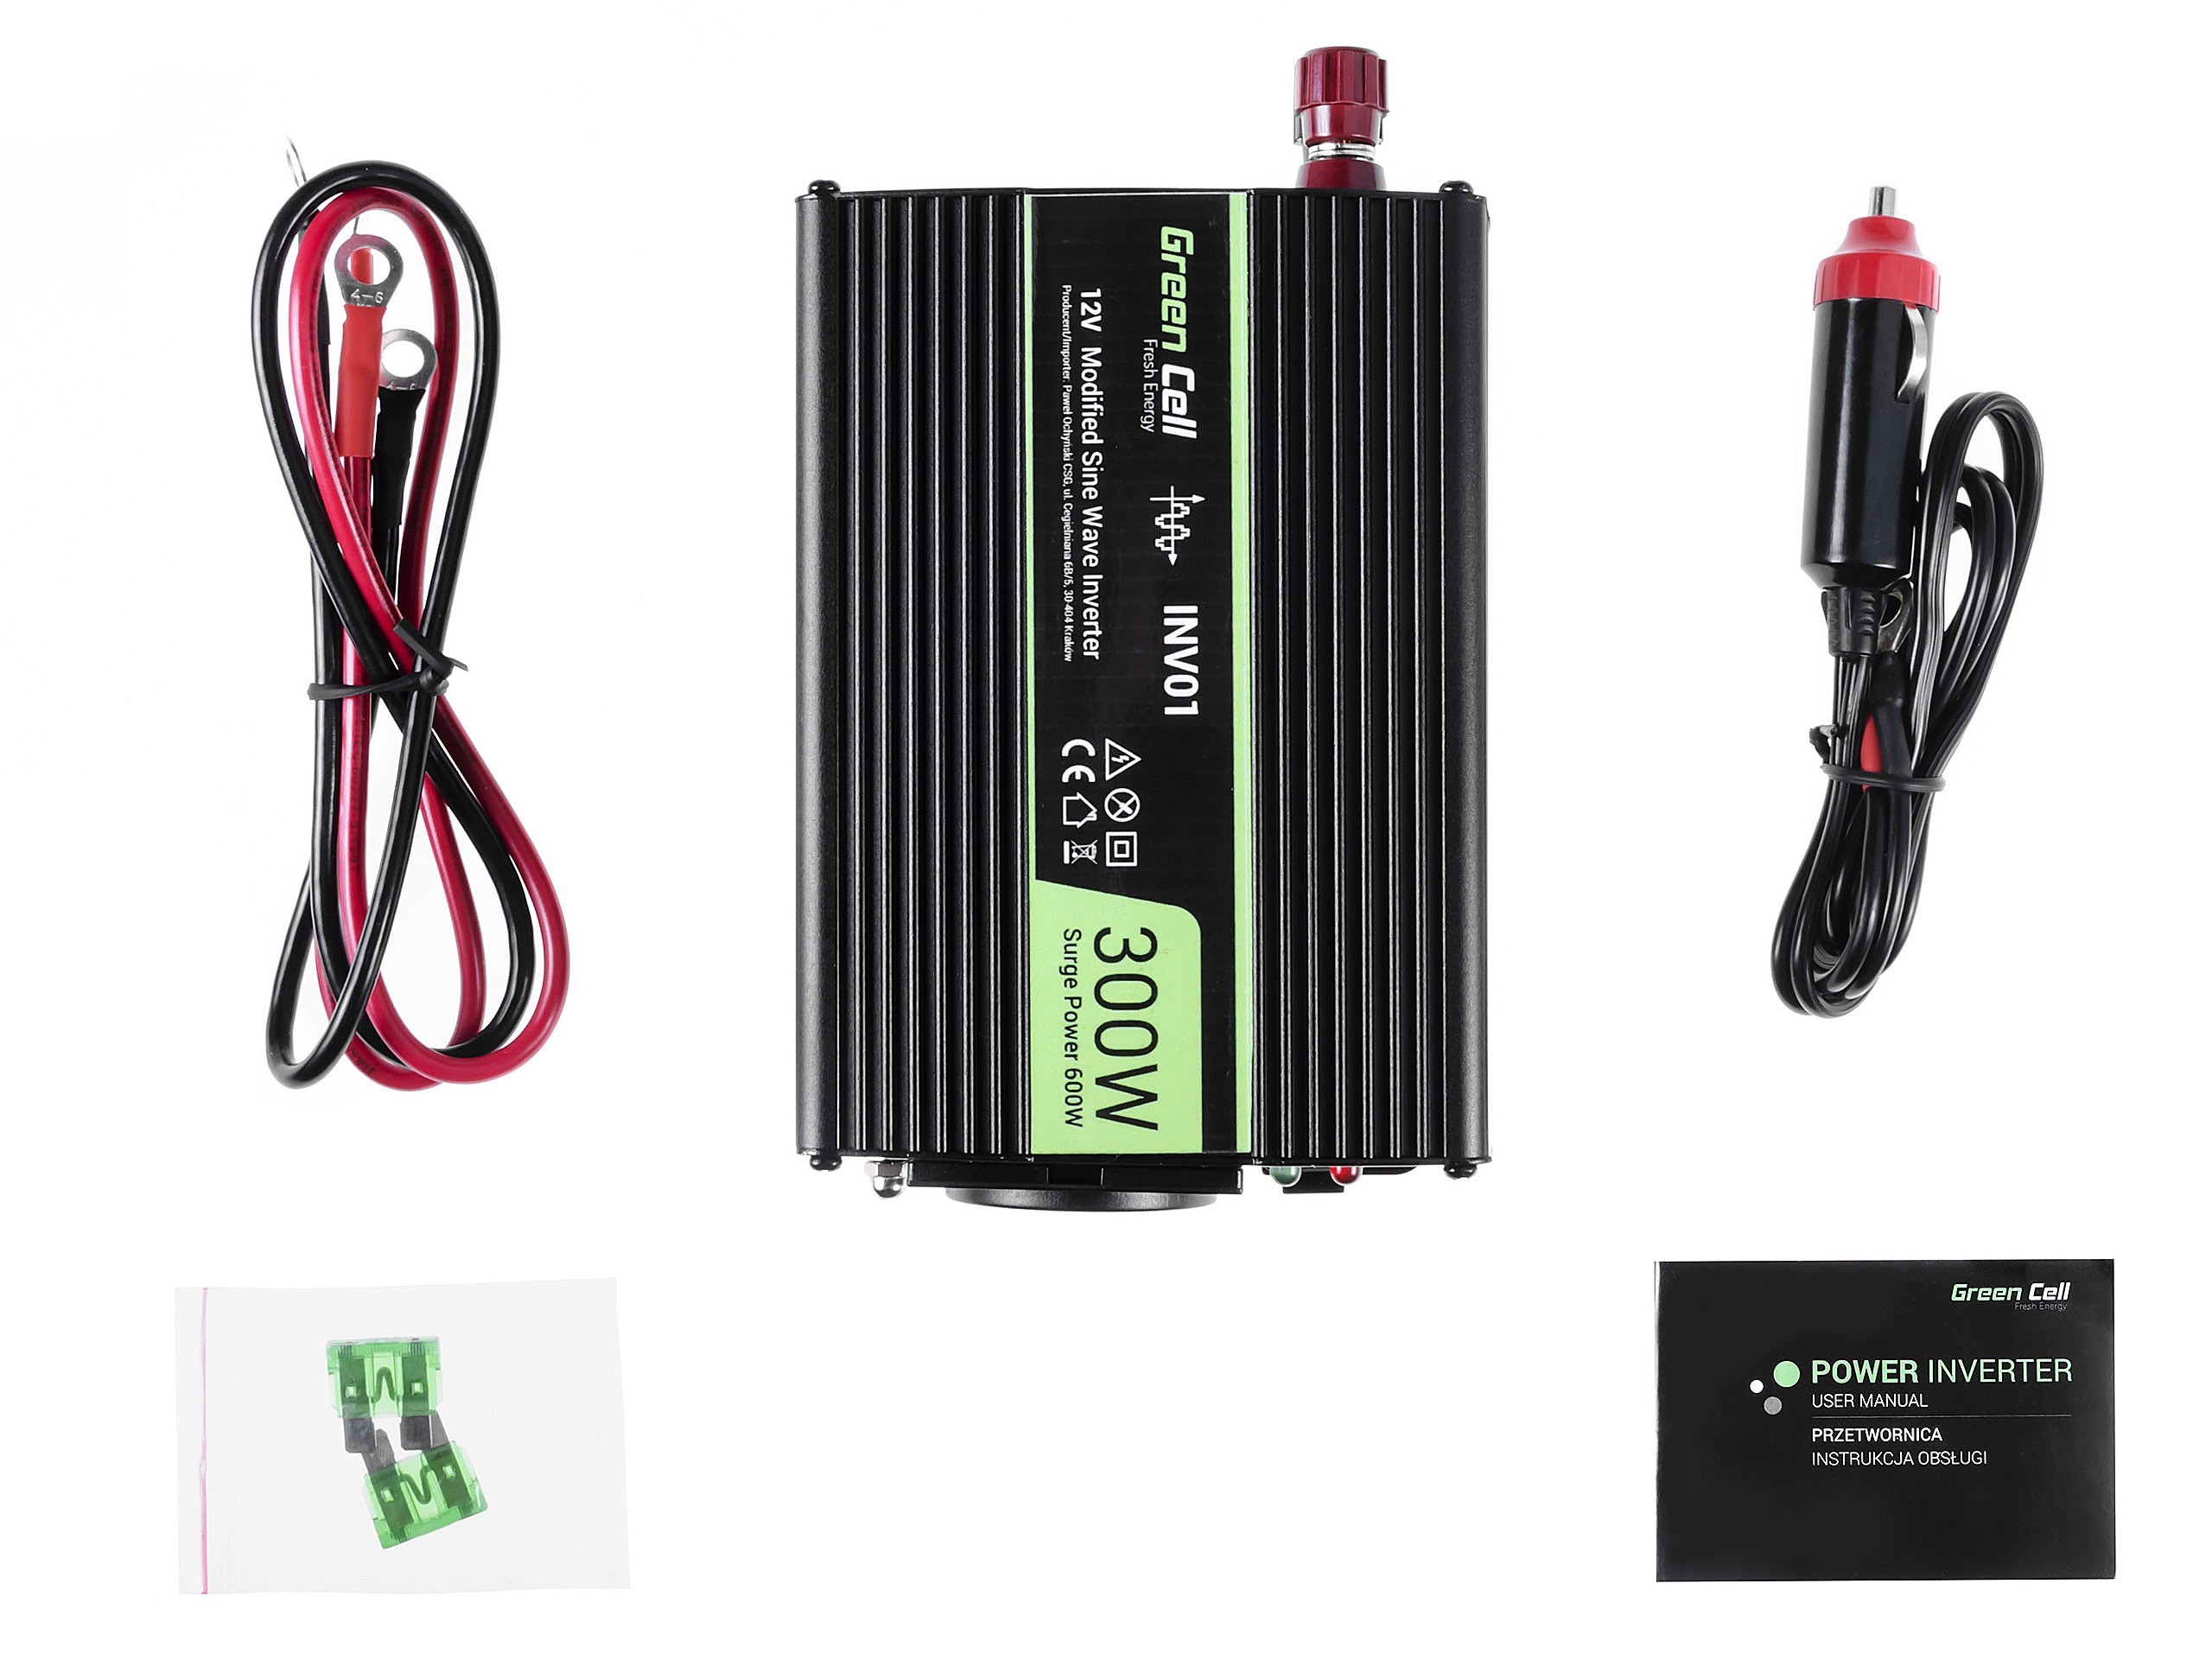 Green Cell Car Power Inverter 12V to 230V, 300W / 600W Strāvas pārveidotājs, Power Inverter